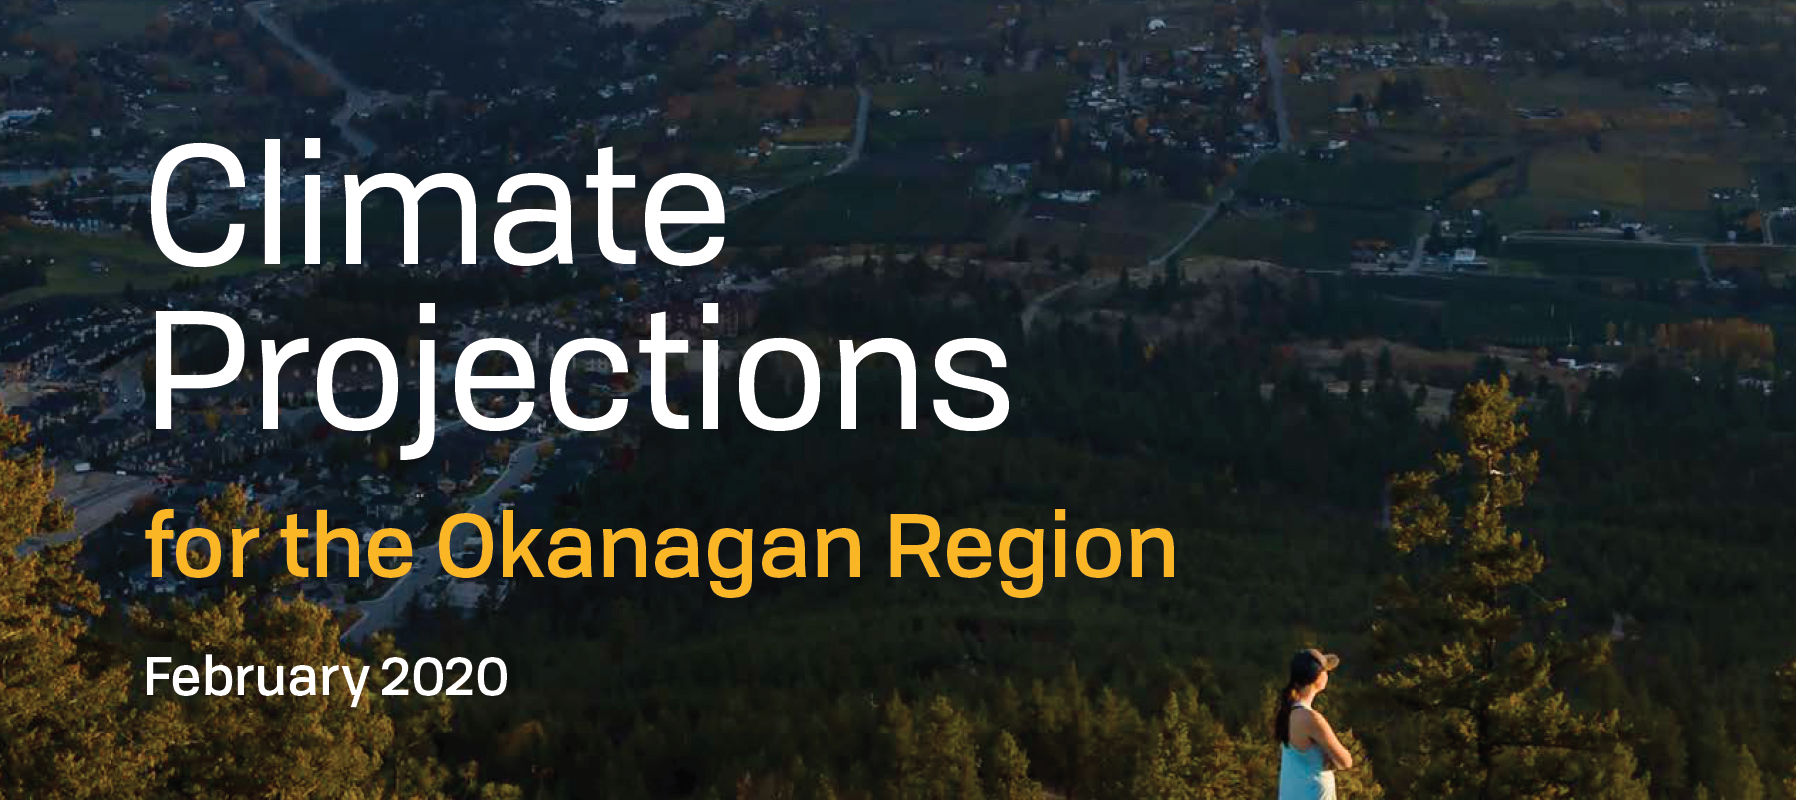 Okanagan Climate Projections Report Cover